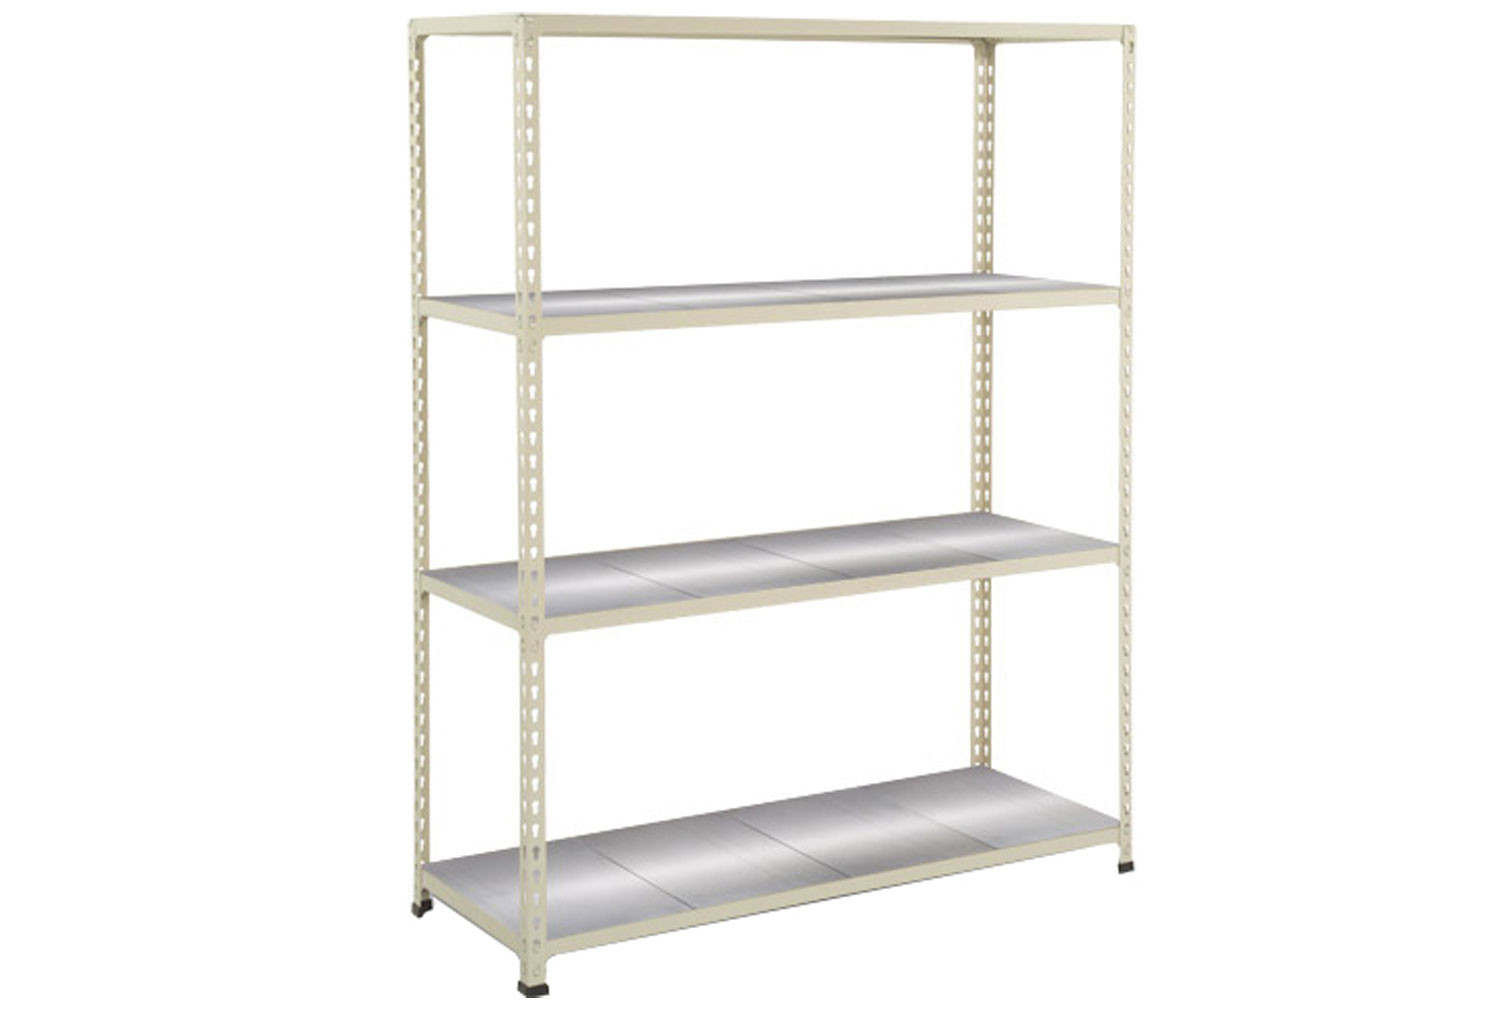 Rapid 2 Shelving With 4 Galvanized Shelves 1525wx1980h (Grey)